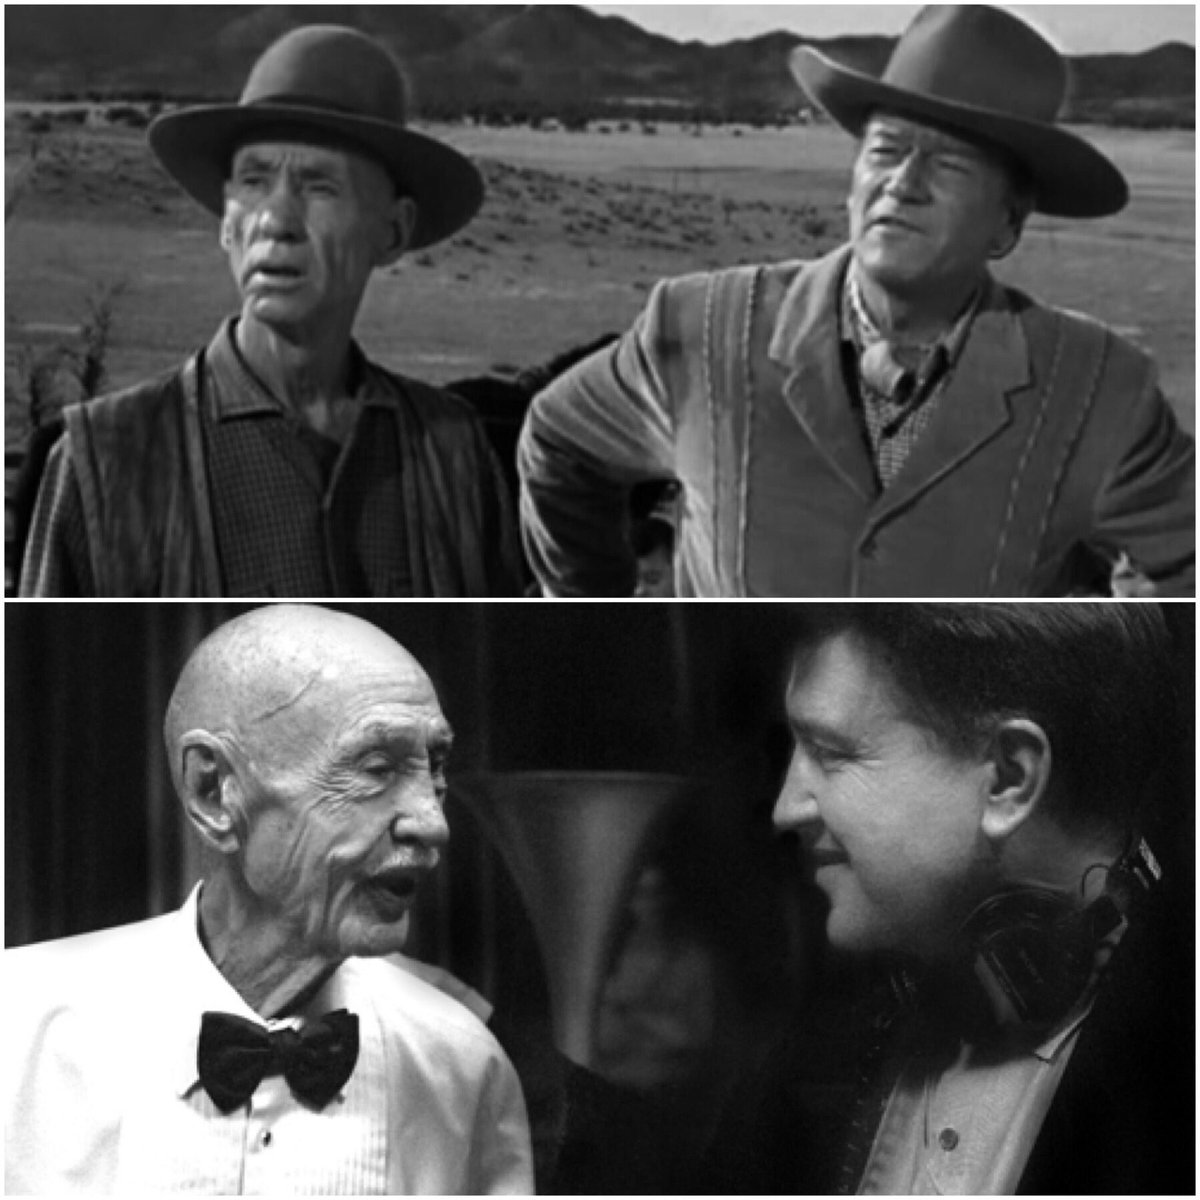 #HankWorden with #DavidLynch on the set of #TwinPeaks  and with #JohnWayne in #McLintock! (1963)<br>http://pic.twitter.com/67Rr9nZAEN